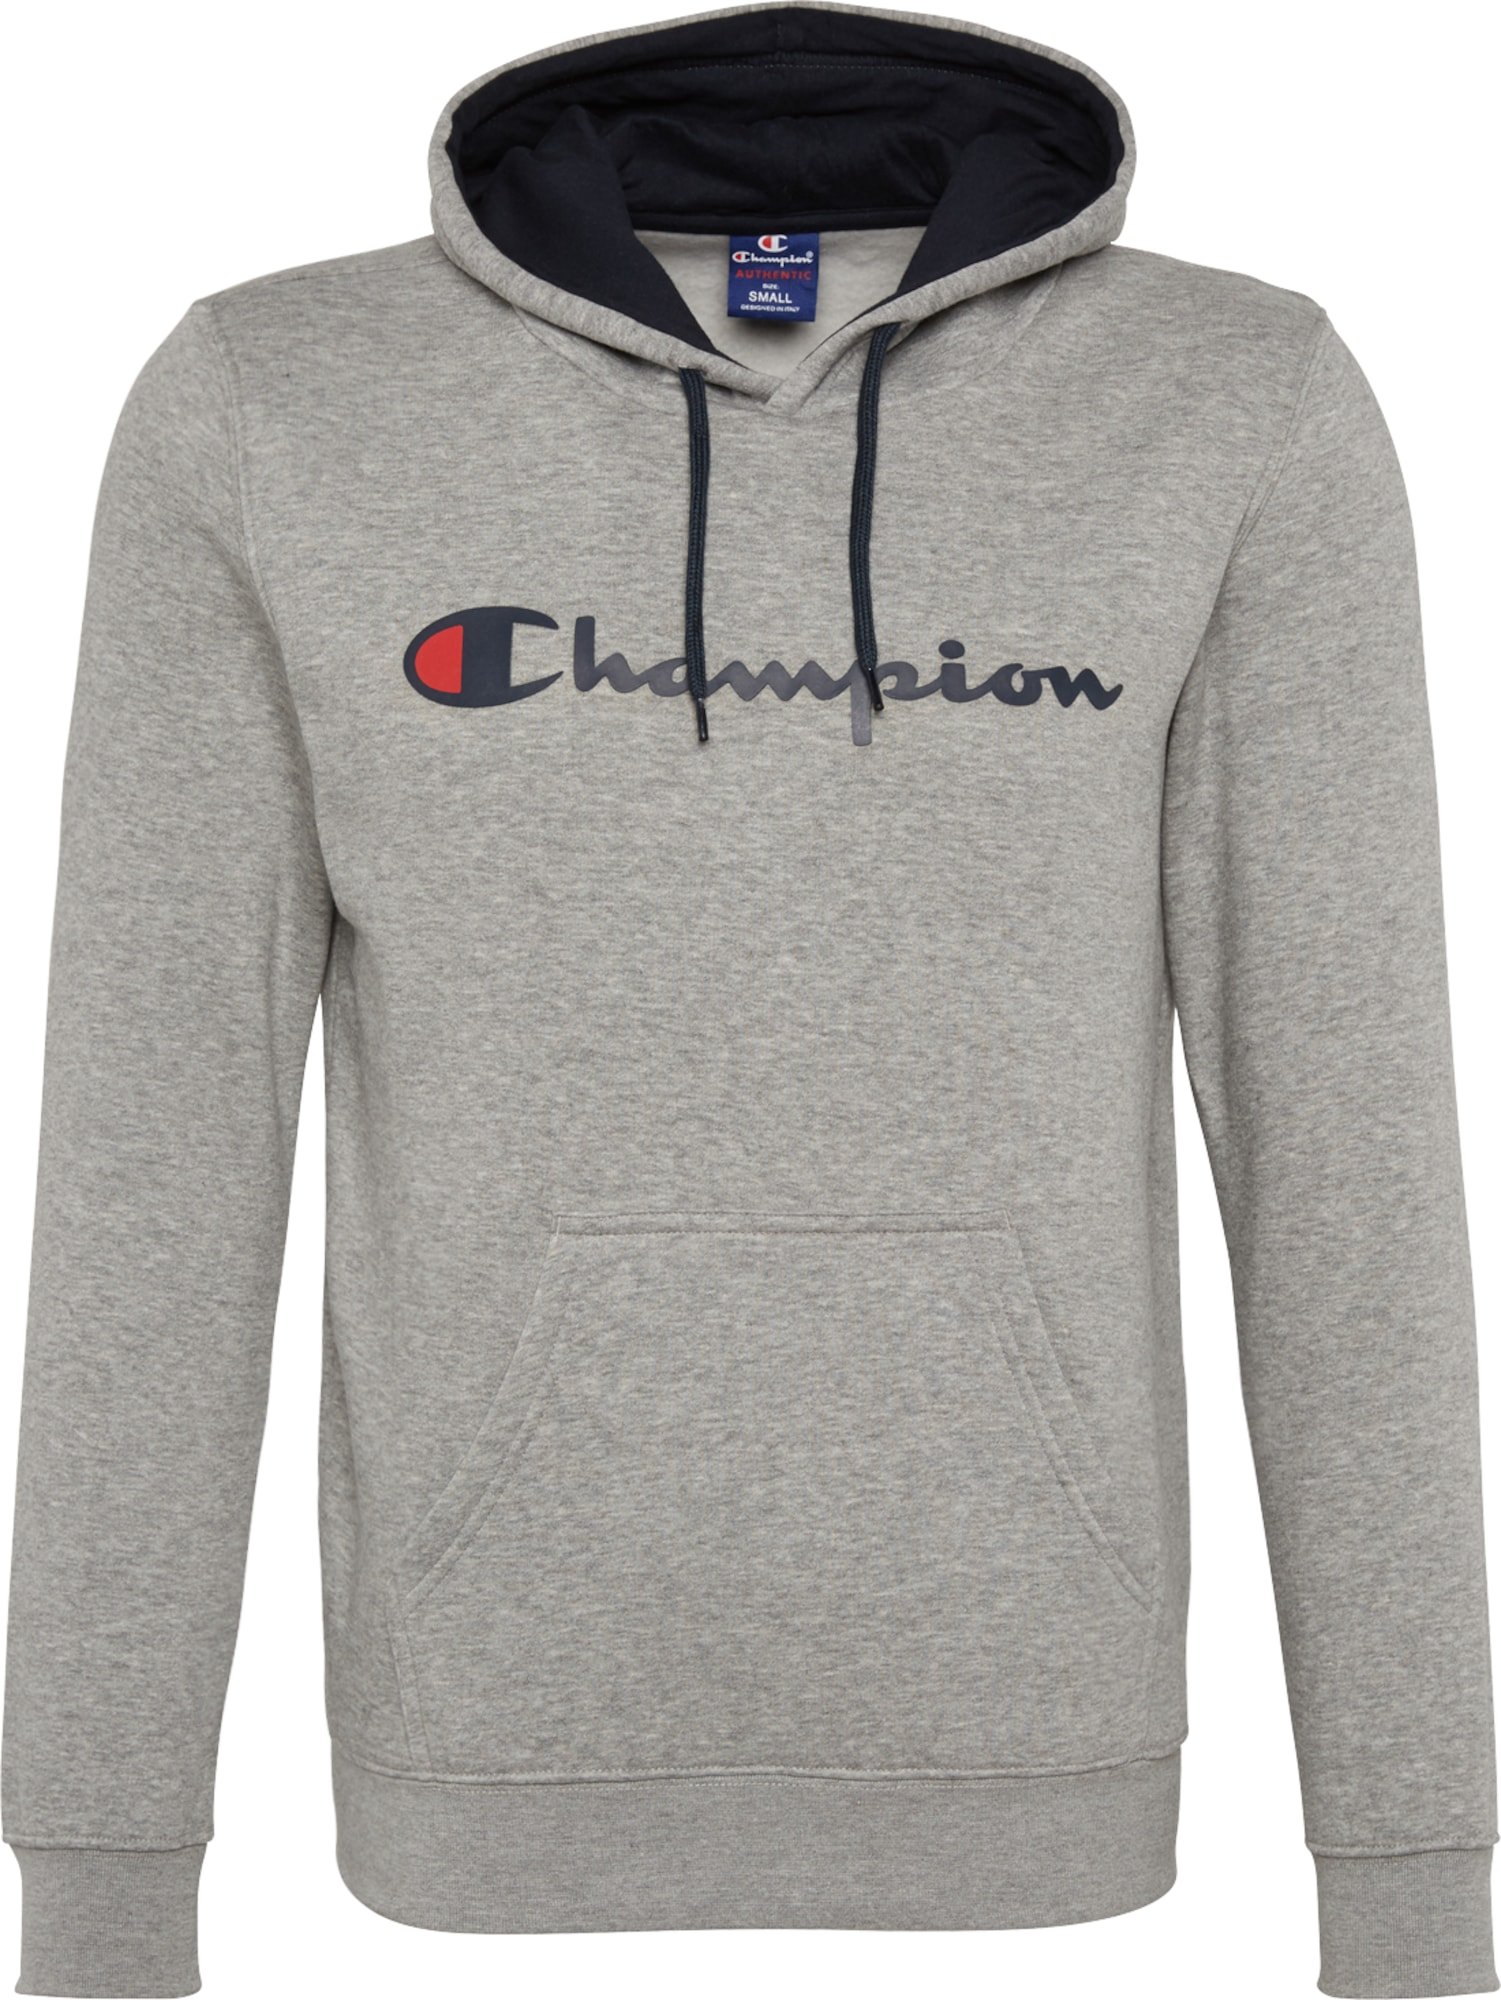 champion authentic athletic apparel sweatshirt 39 hooded. Black Bedroom Furniture Sets. Home Design Ideas